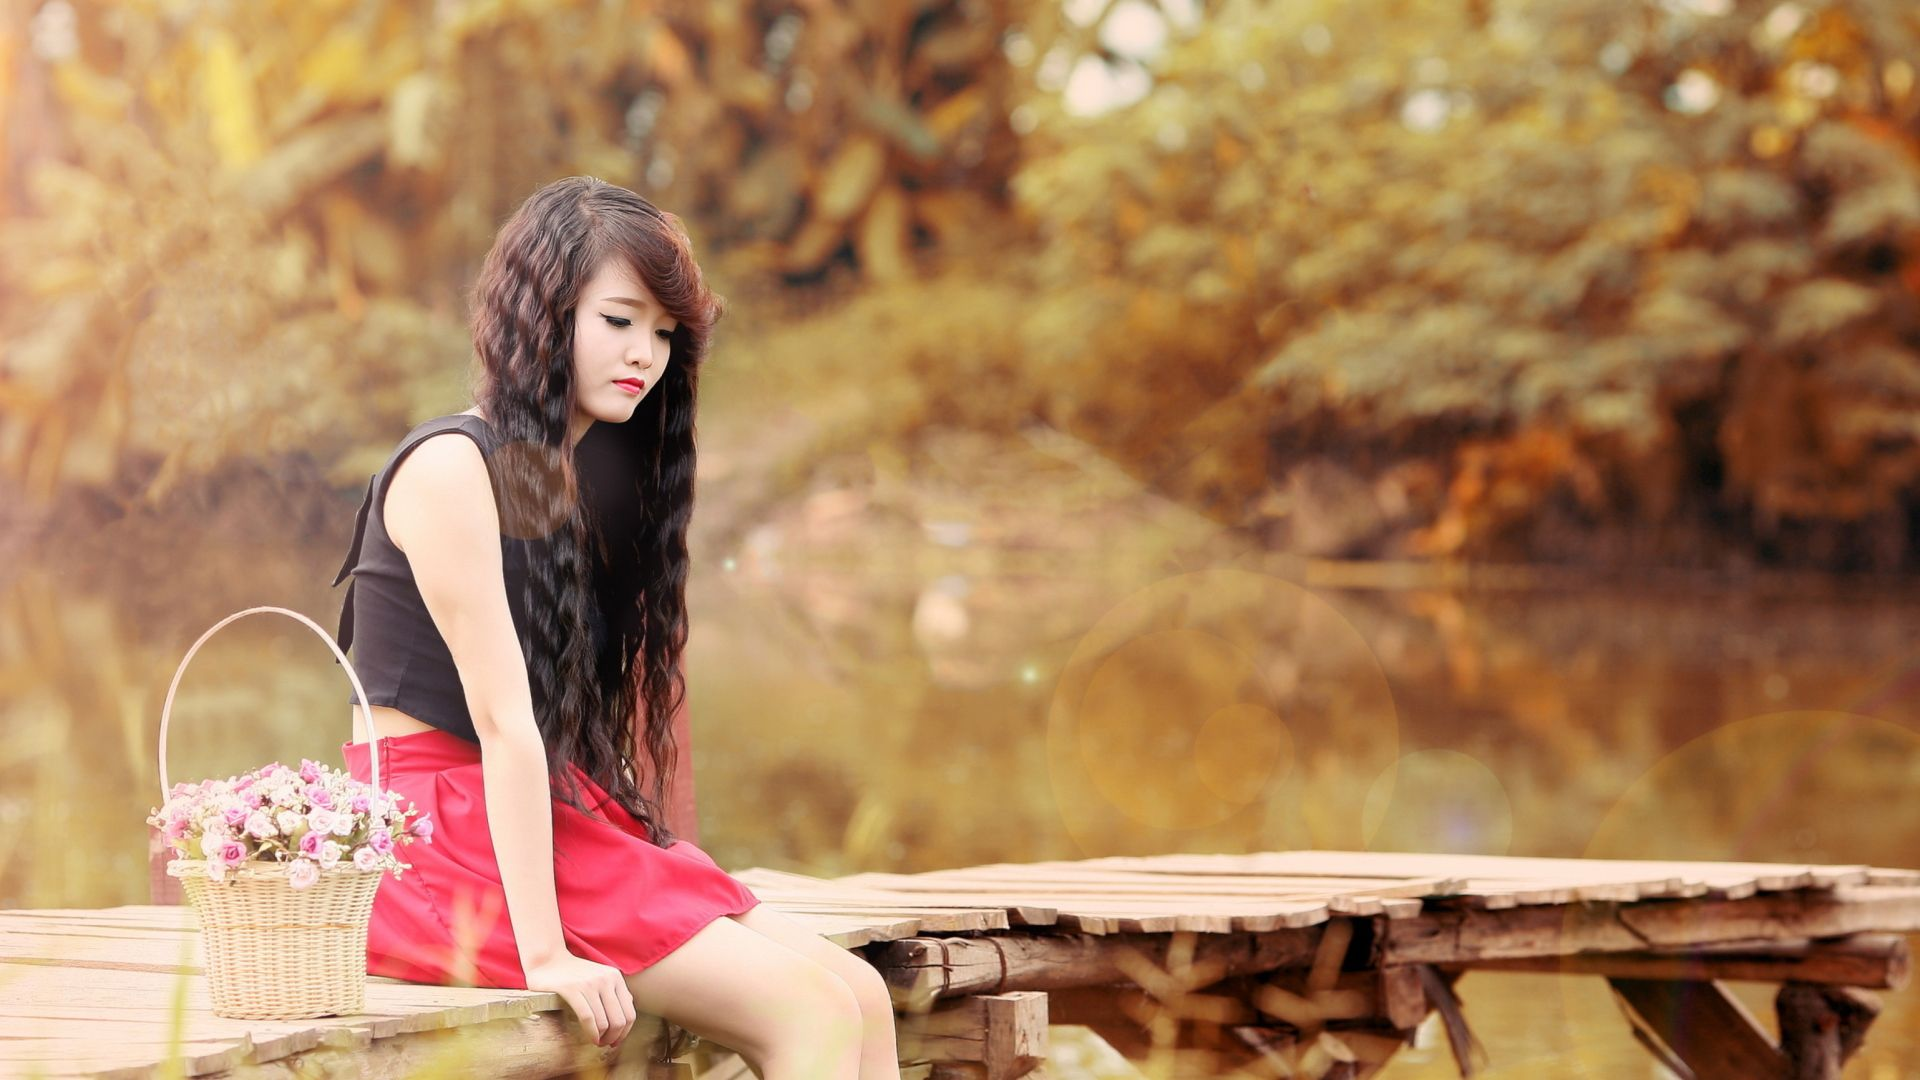 Sad Girl HD Wallpapers : Find best latest Sad Girl HD Wallpapers in HD for your Pc desktop ...